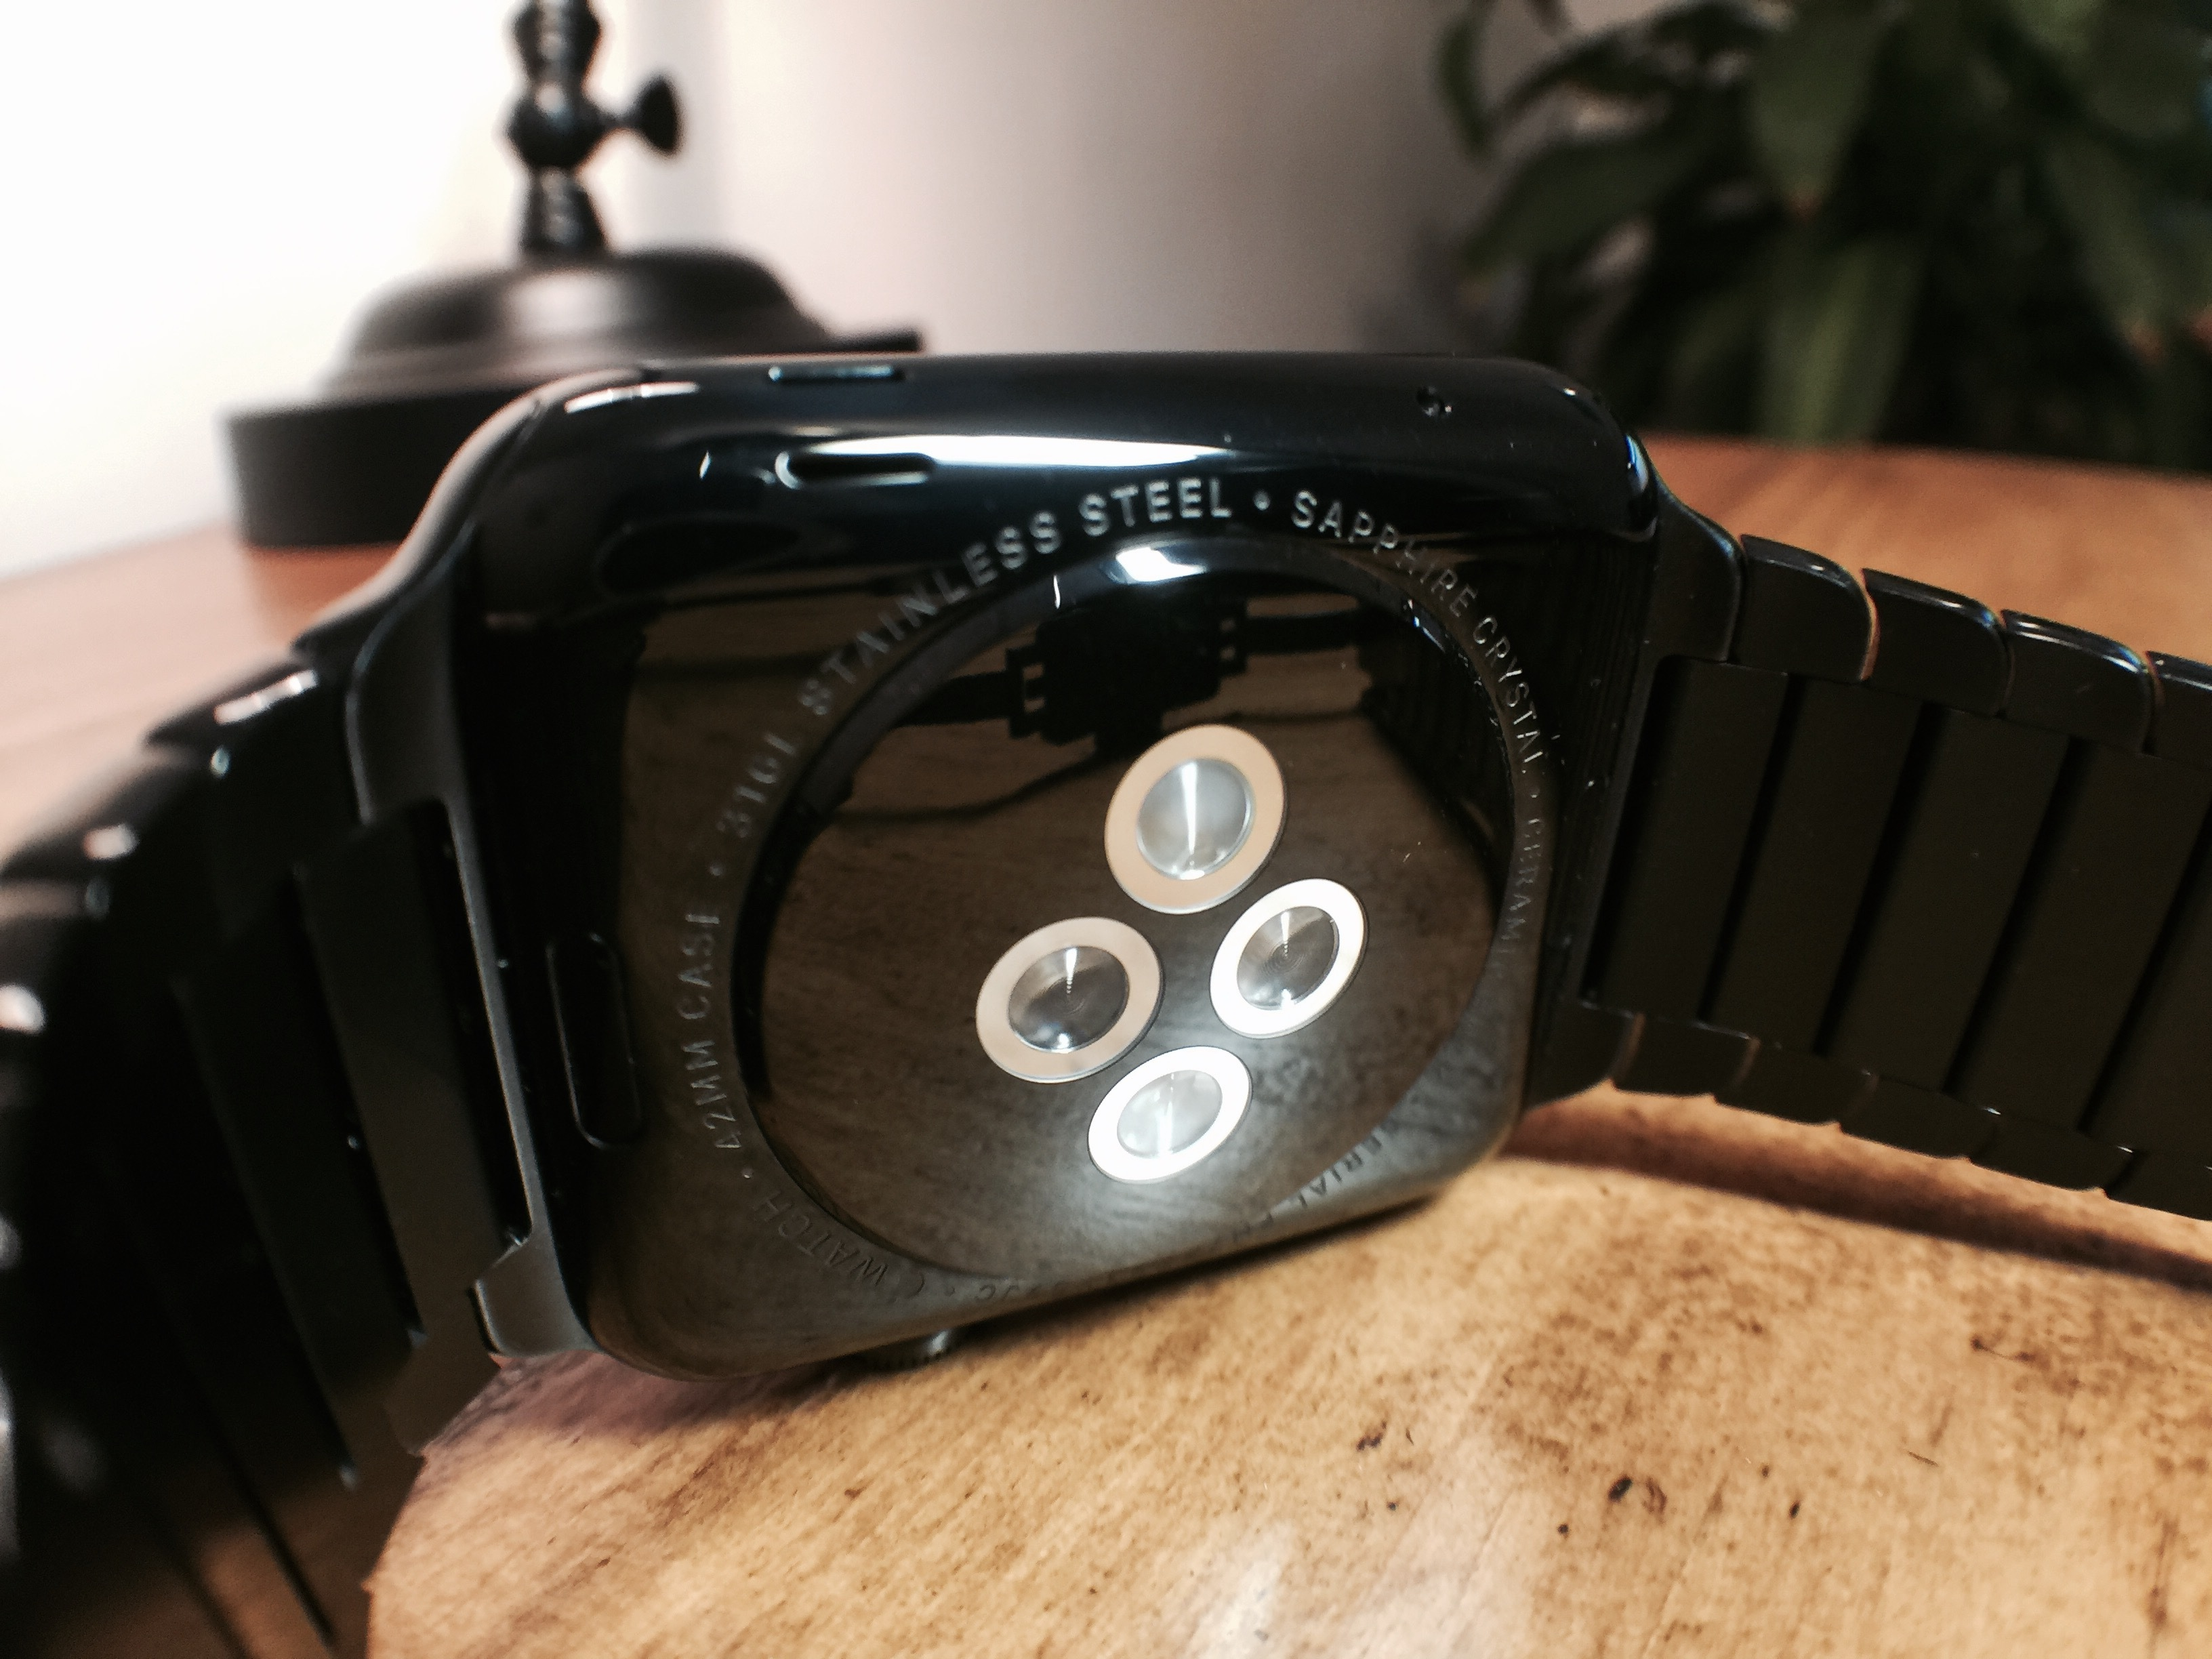 Space Black Apple Watch back